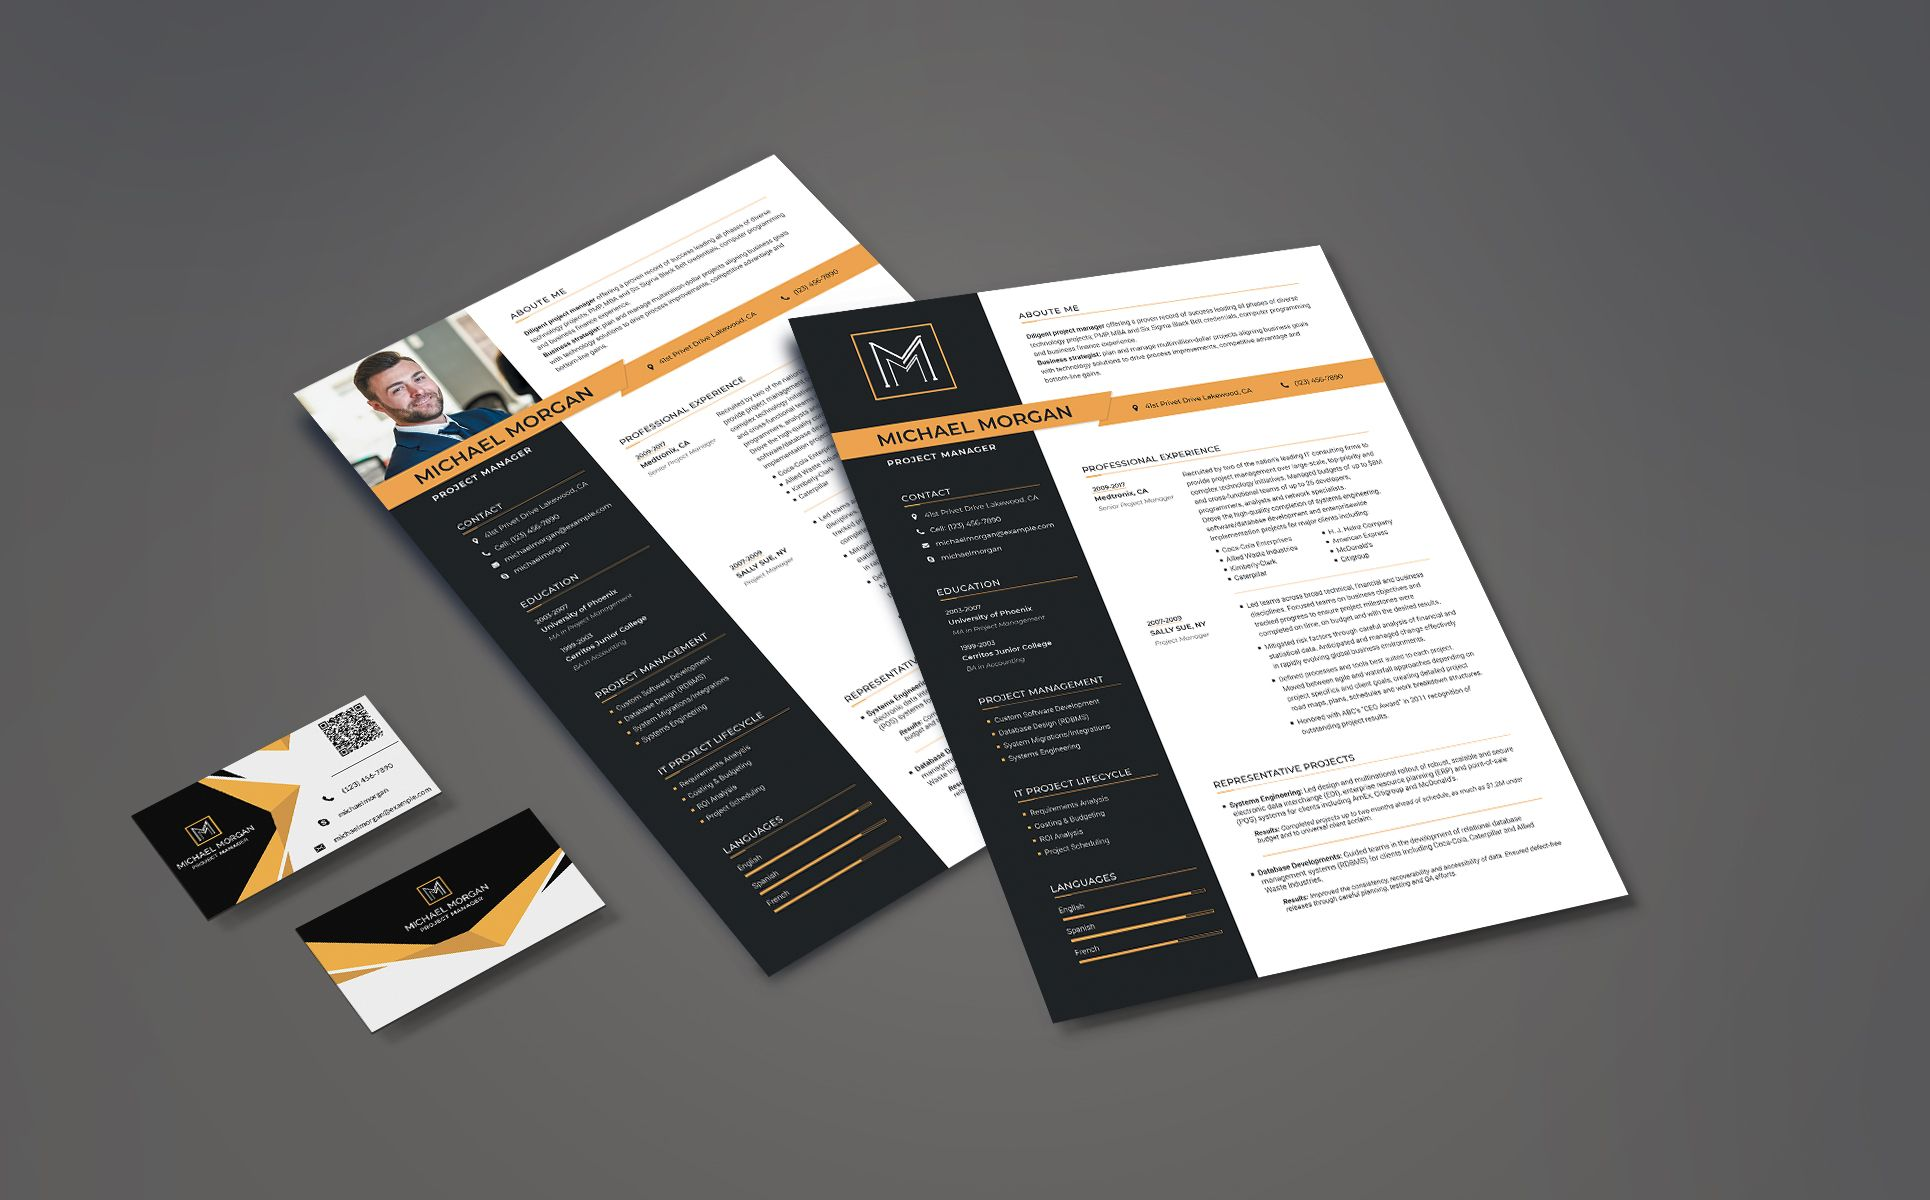 Michael Morgan Project Manager Resume Template 78668 Project Manager Resume Resume Template Manager Resume